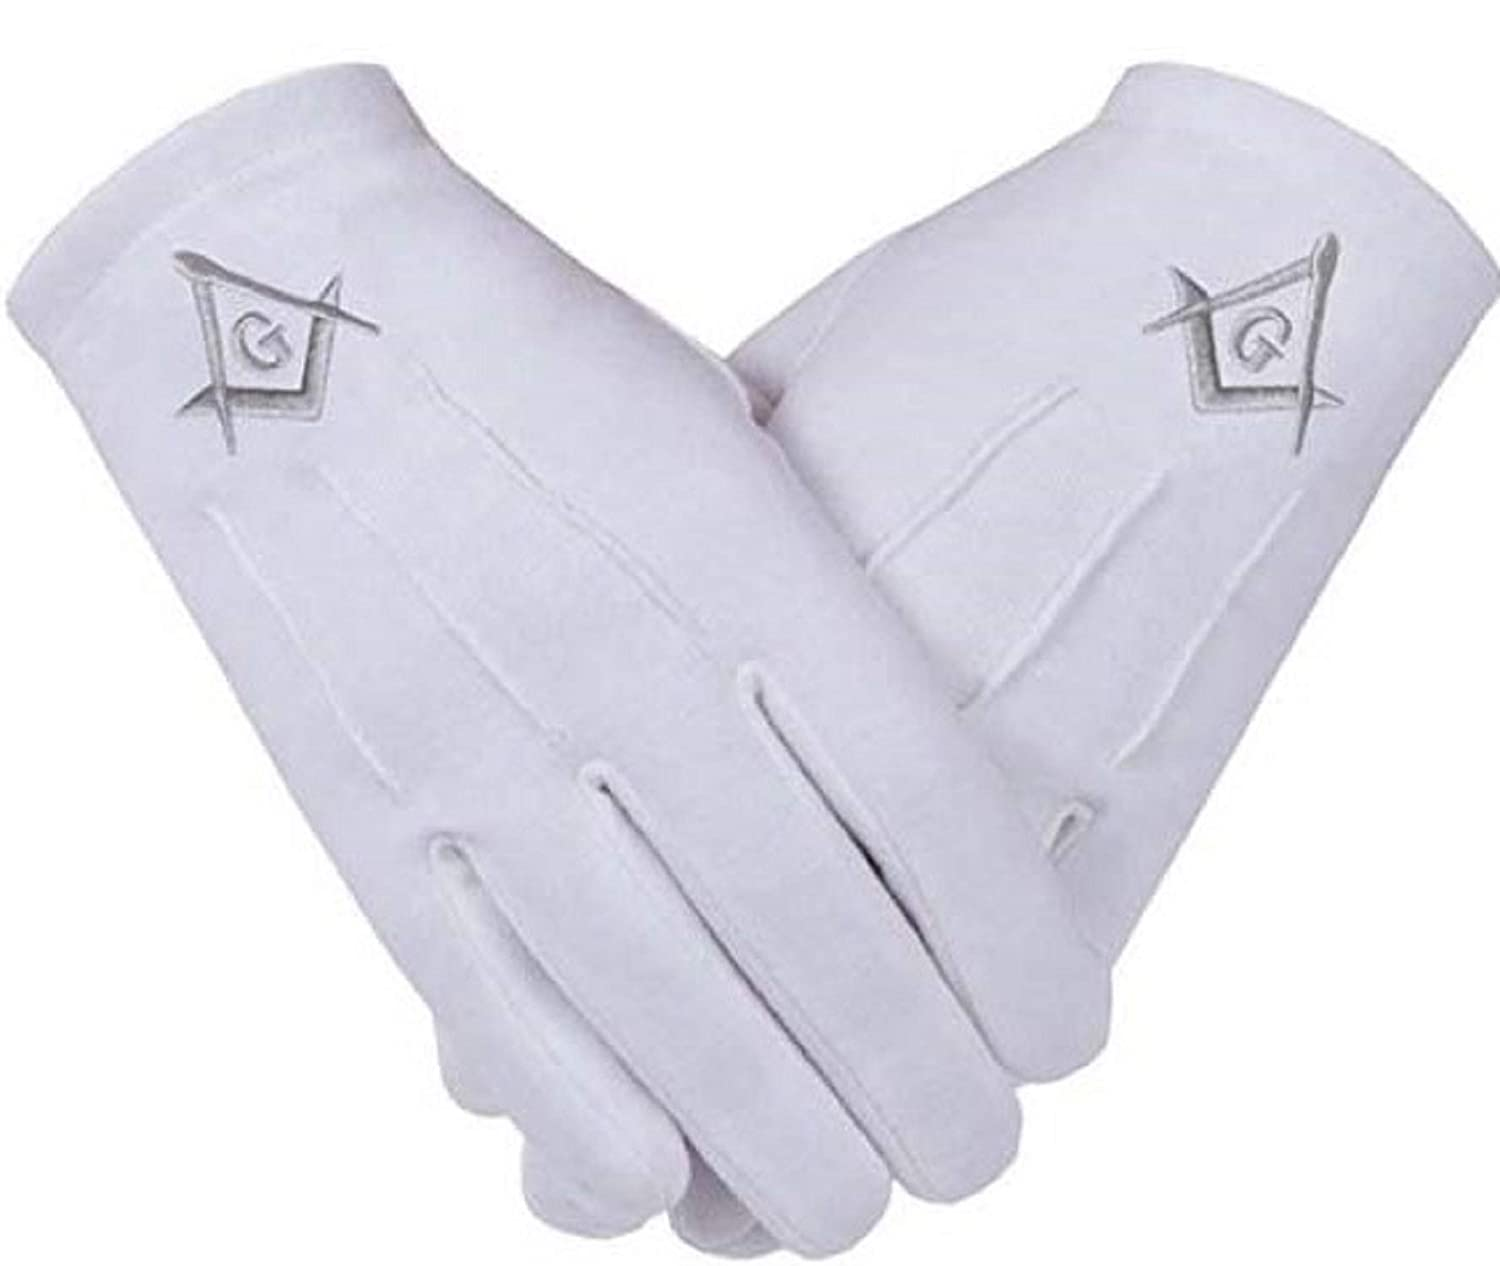 Freemasons Masonic Gloves in Cotton in Silver Embroidered SC&G ...